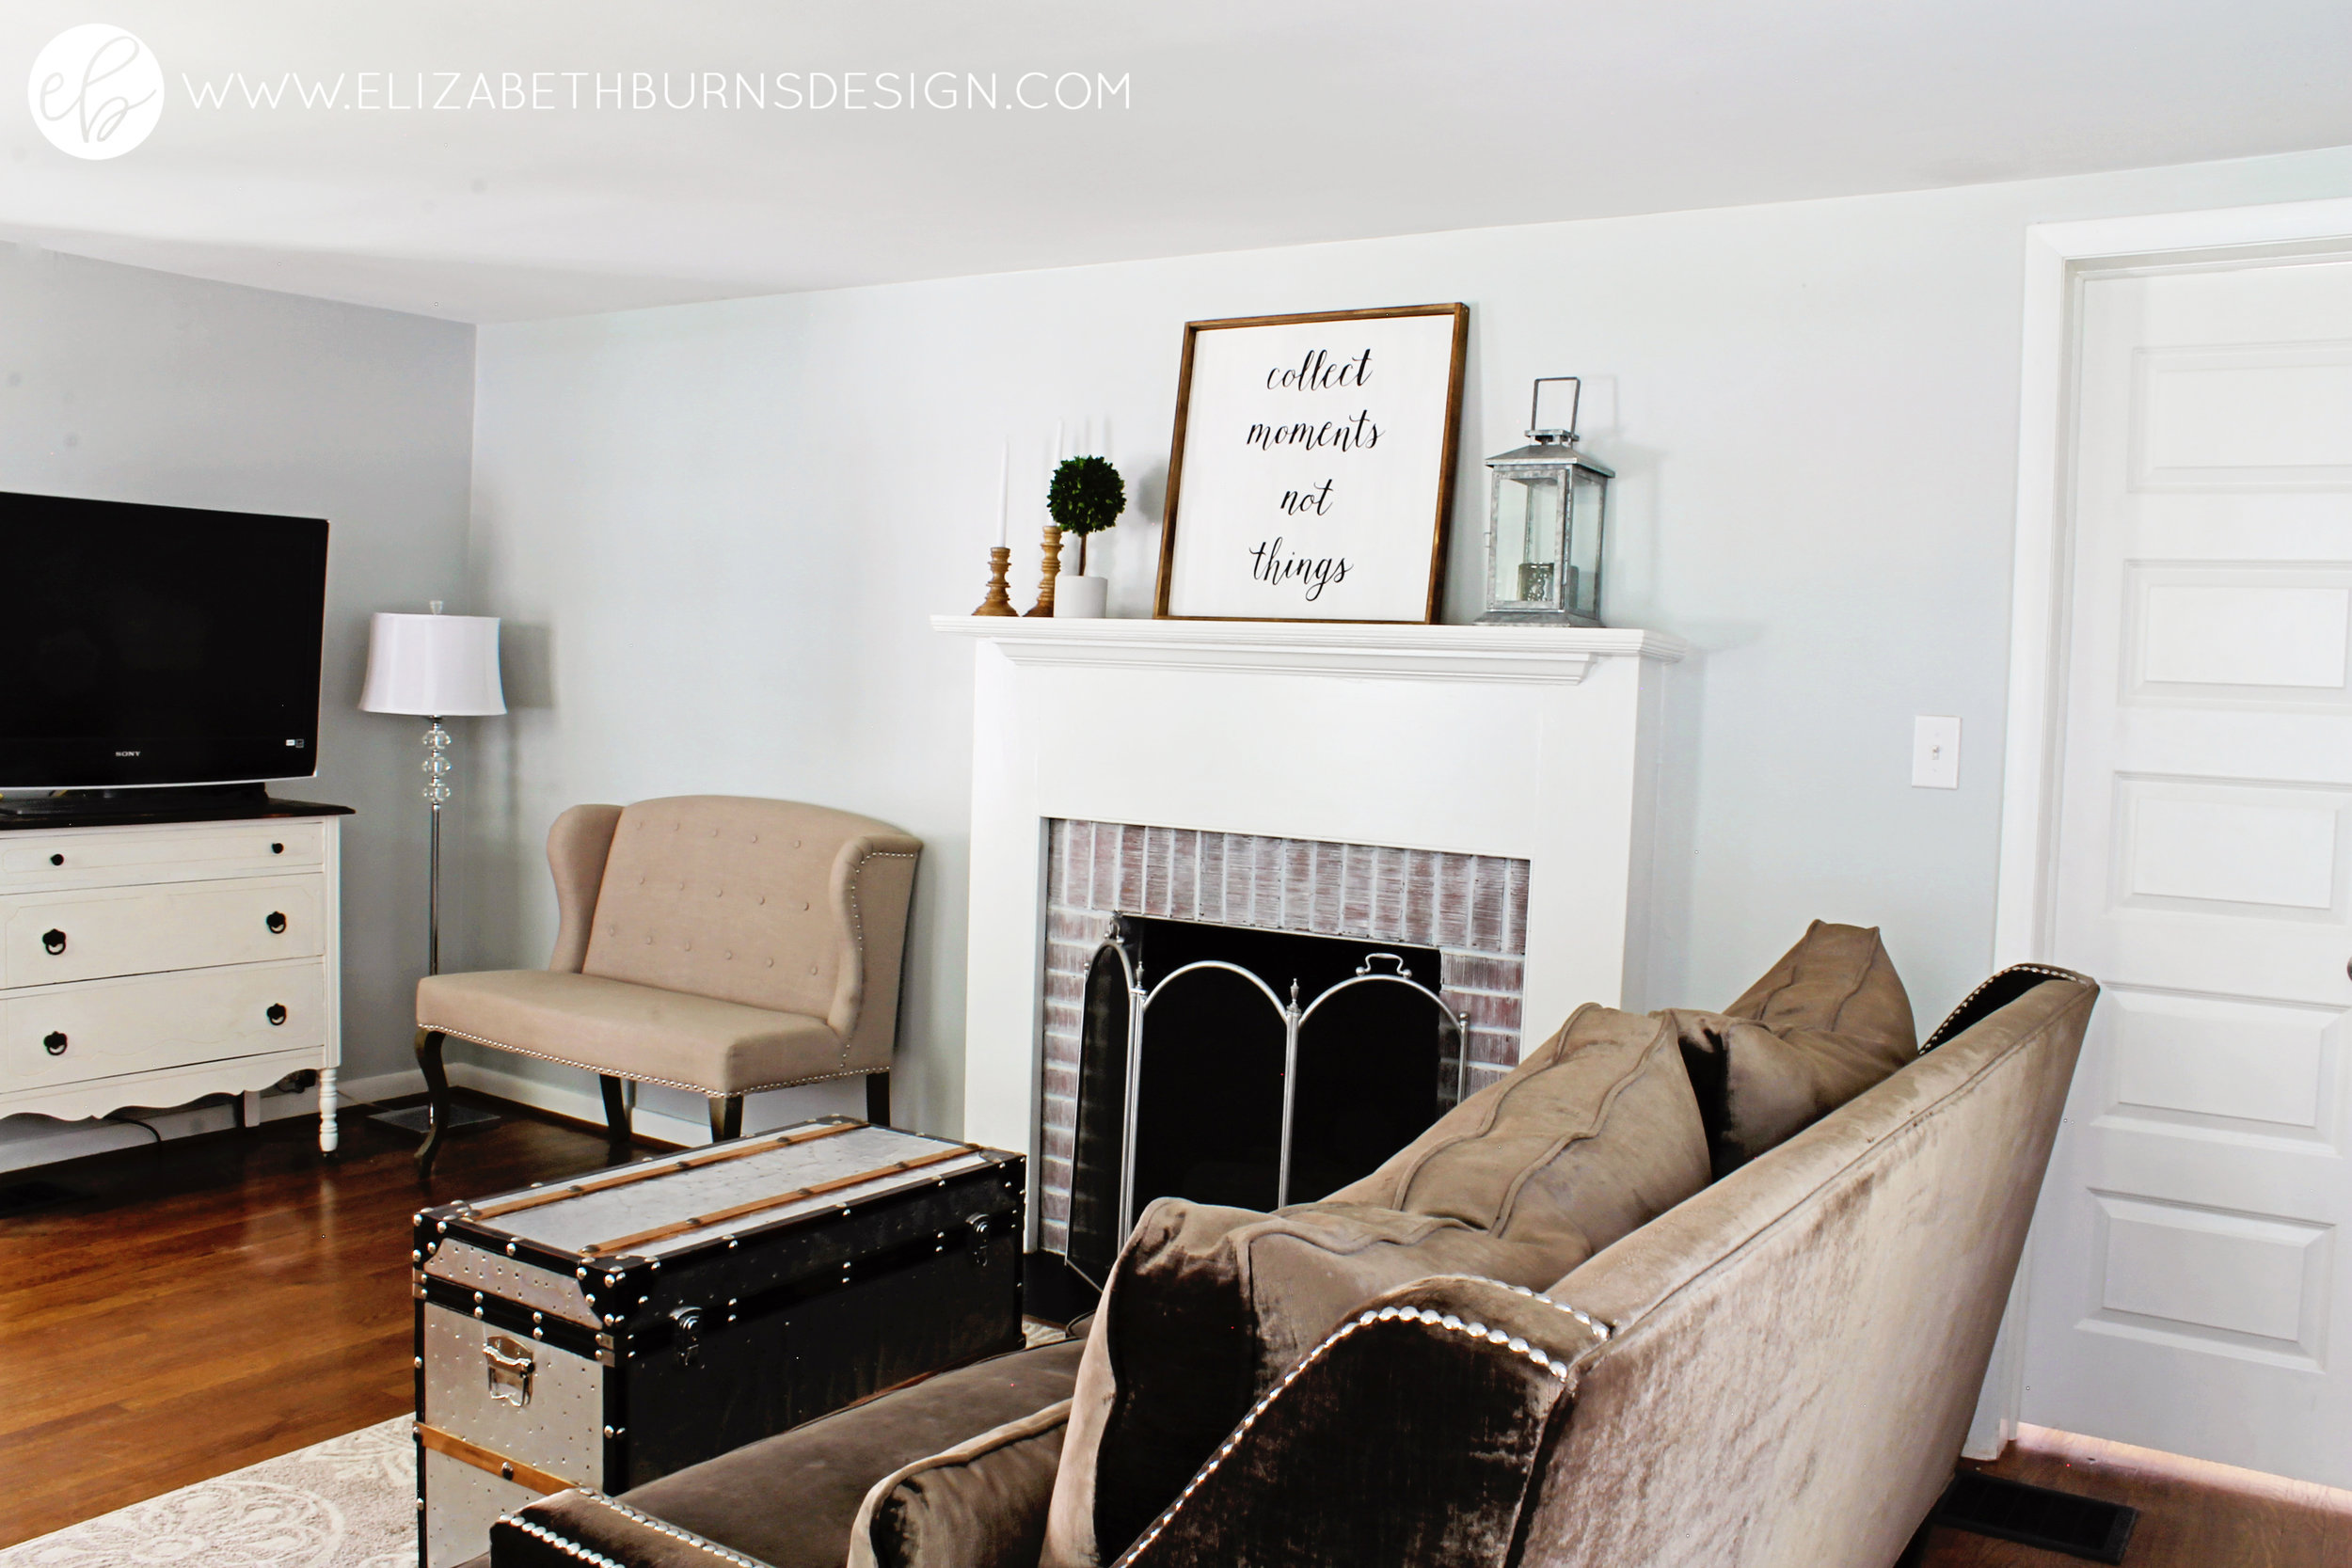 Elizabeth Burns Design | SW Silver Strand Sherwin Williams, Raleigh Interior Design, Small House Decorating, Staging, DIY, Design on a Budget, Tiny House, Fixer Upper Style, Farmhouse Look